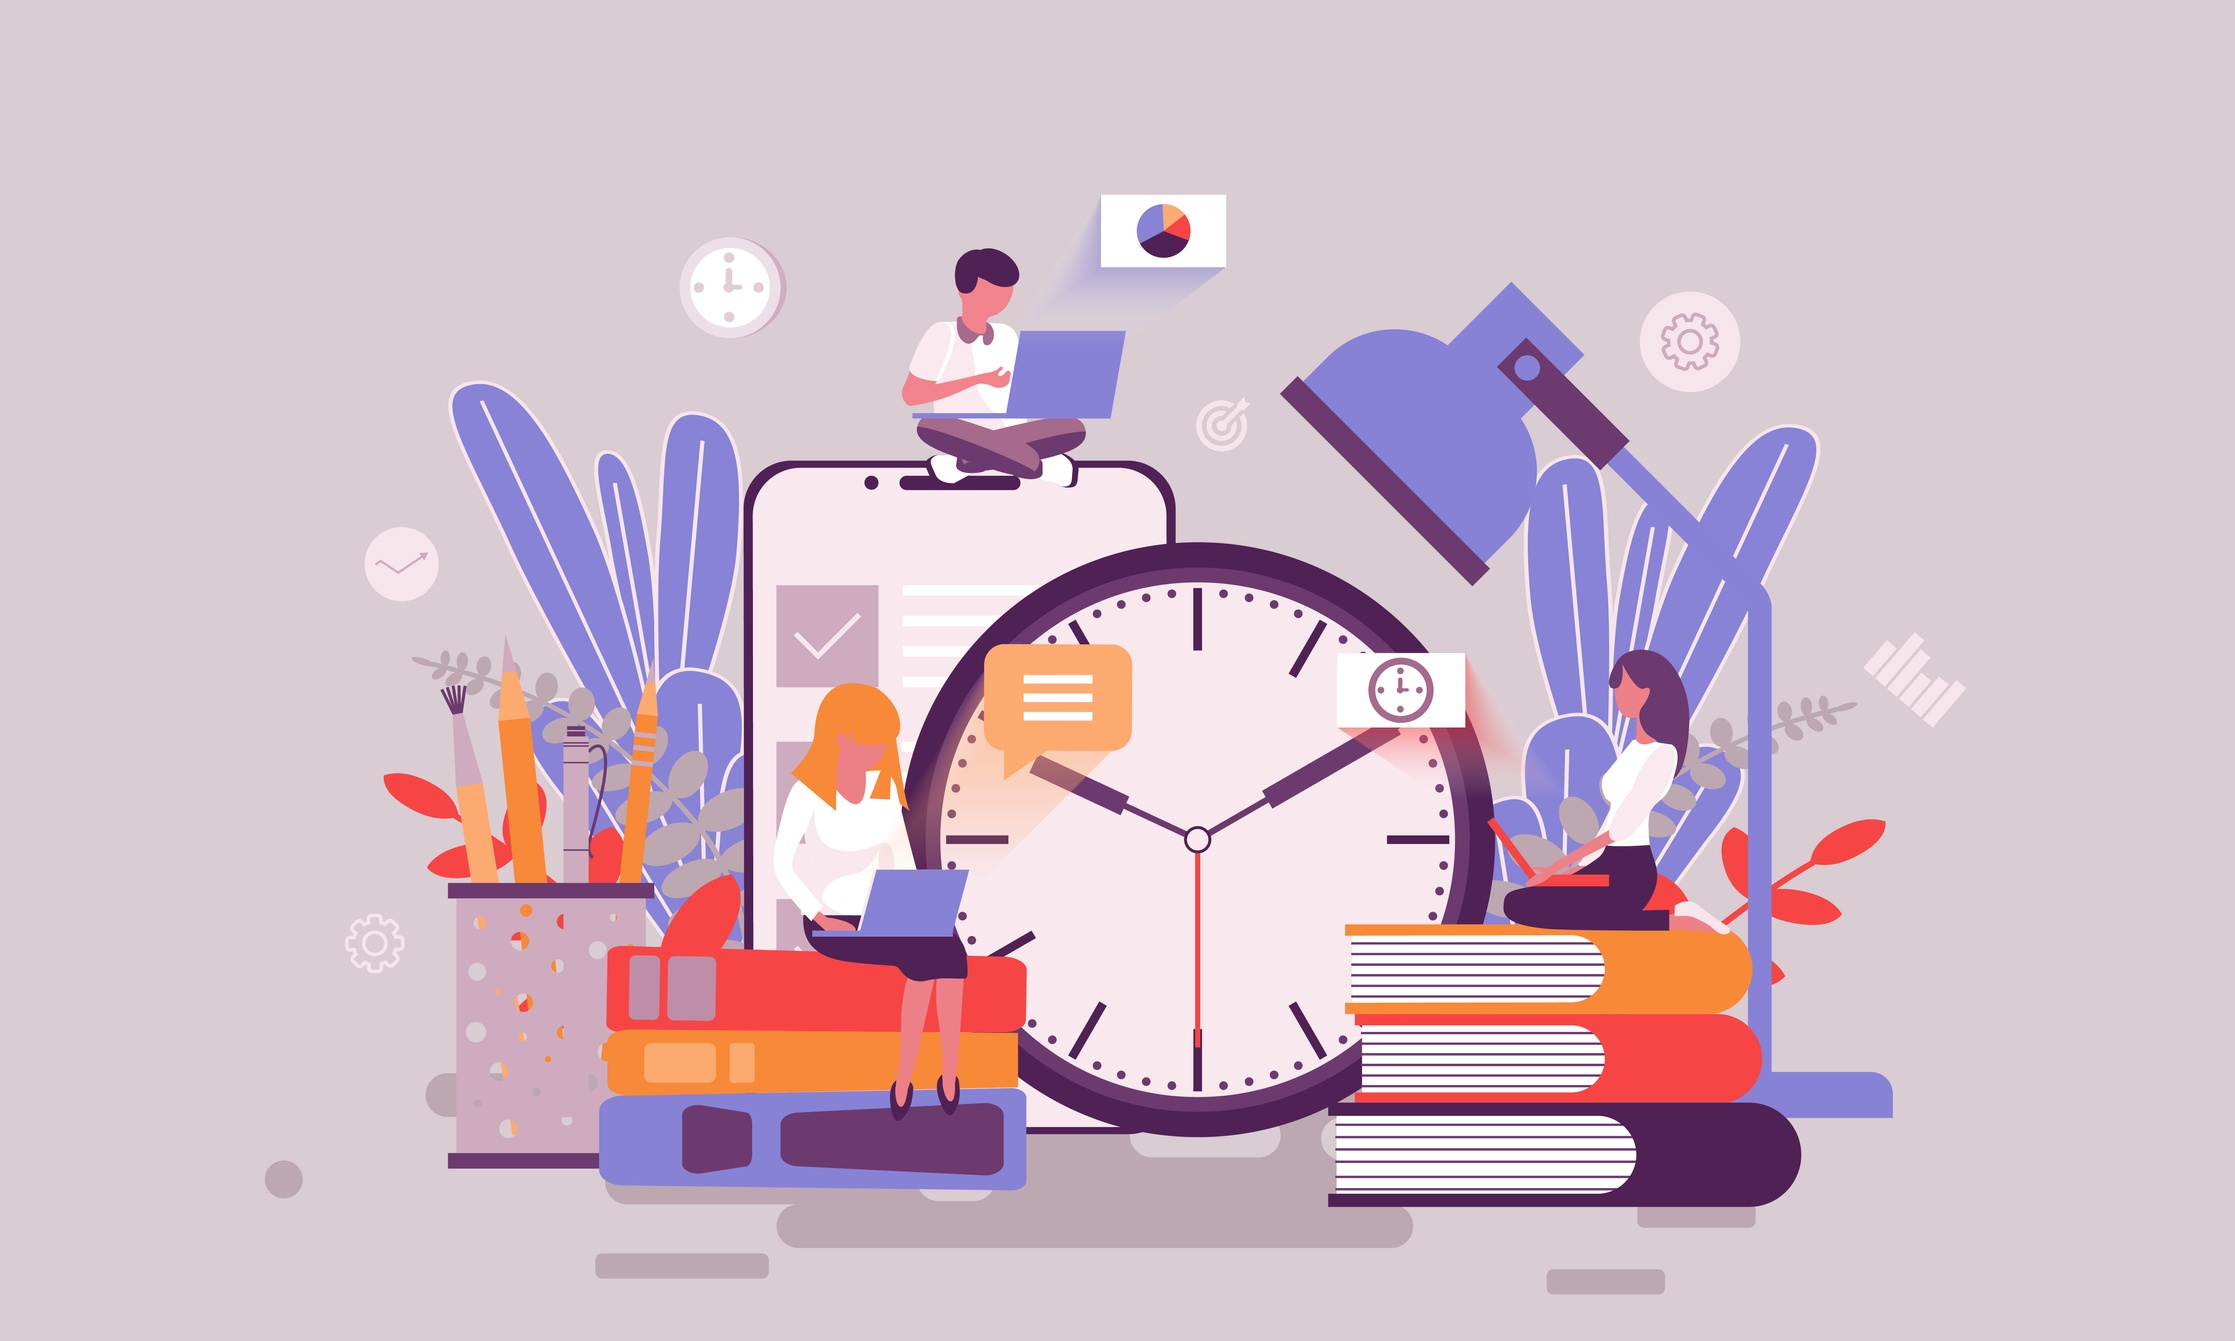 attention management and procrastination: attention management is more important than time management